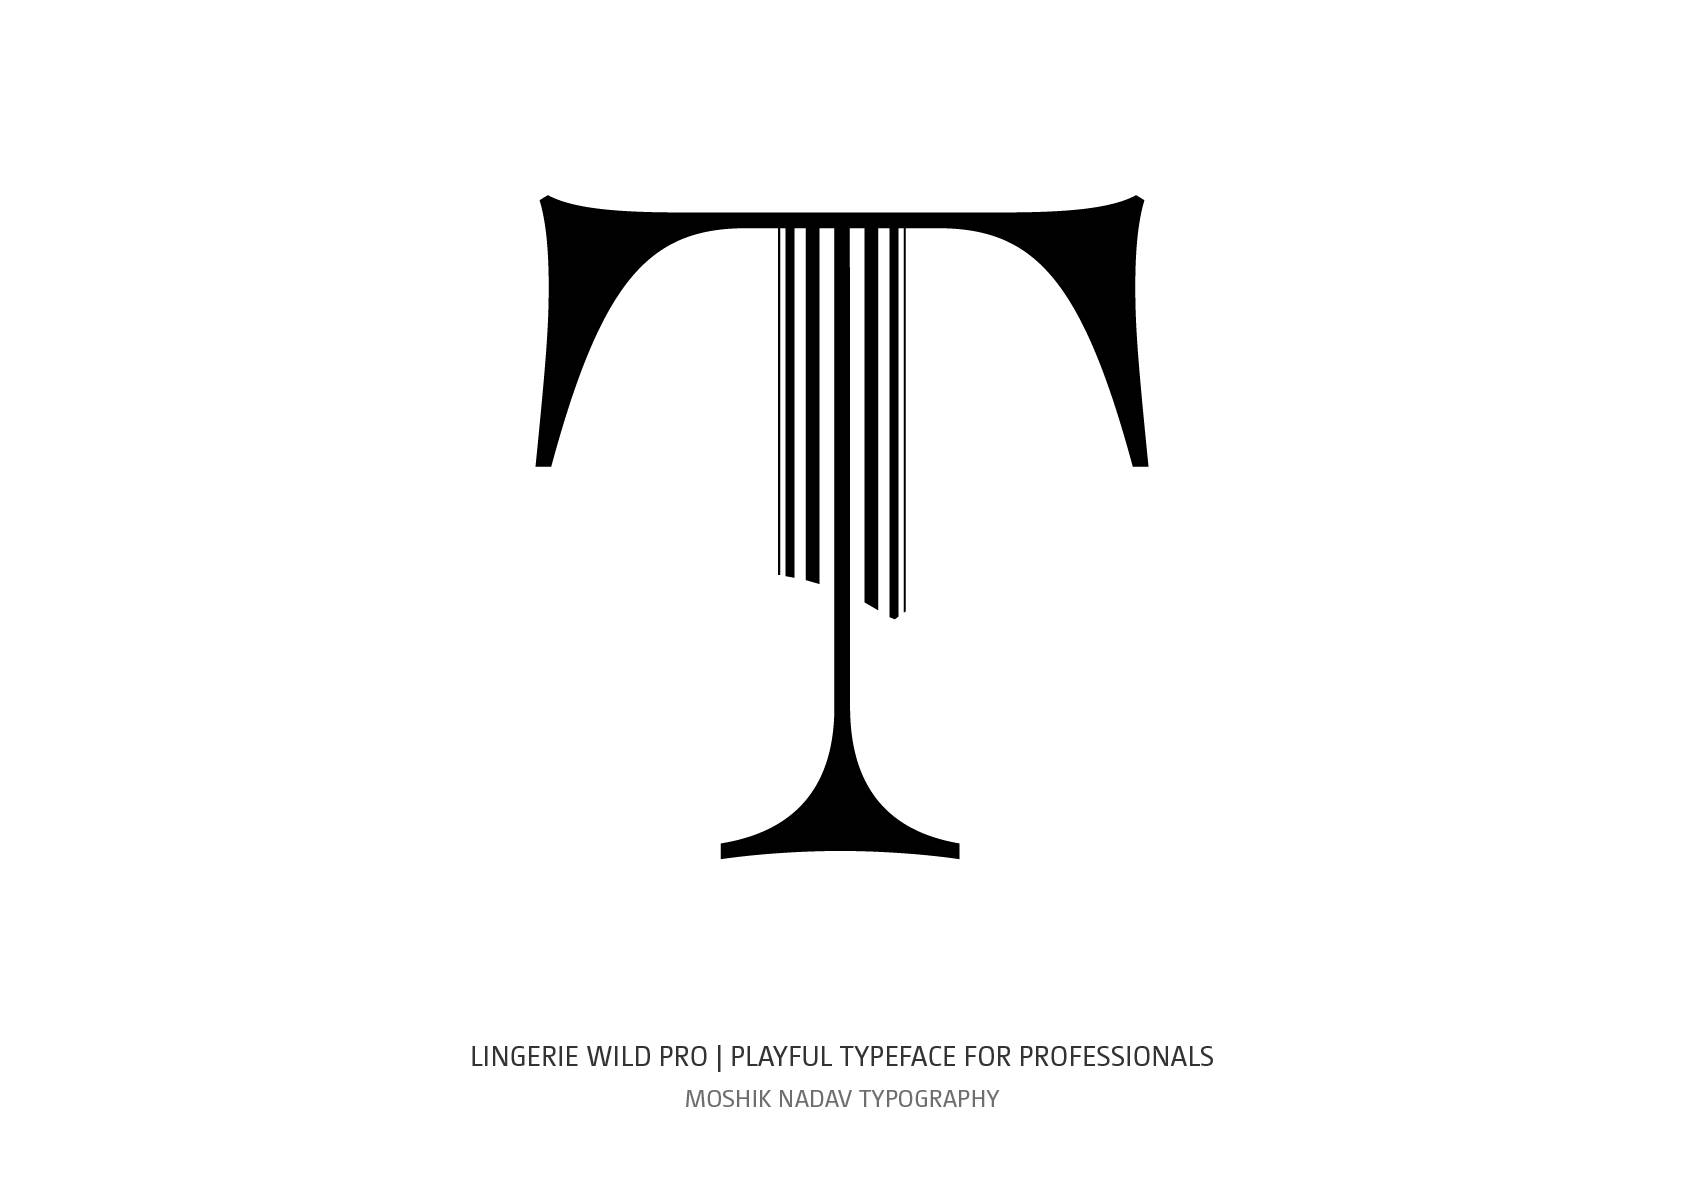 Uppercase T made with Lingerie Wild Pro Typeface by Moshik Nadav Typography NYC